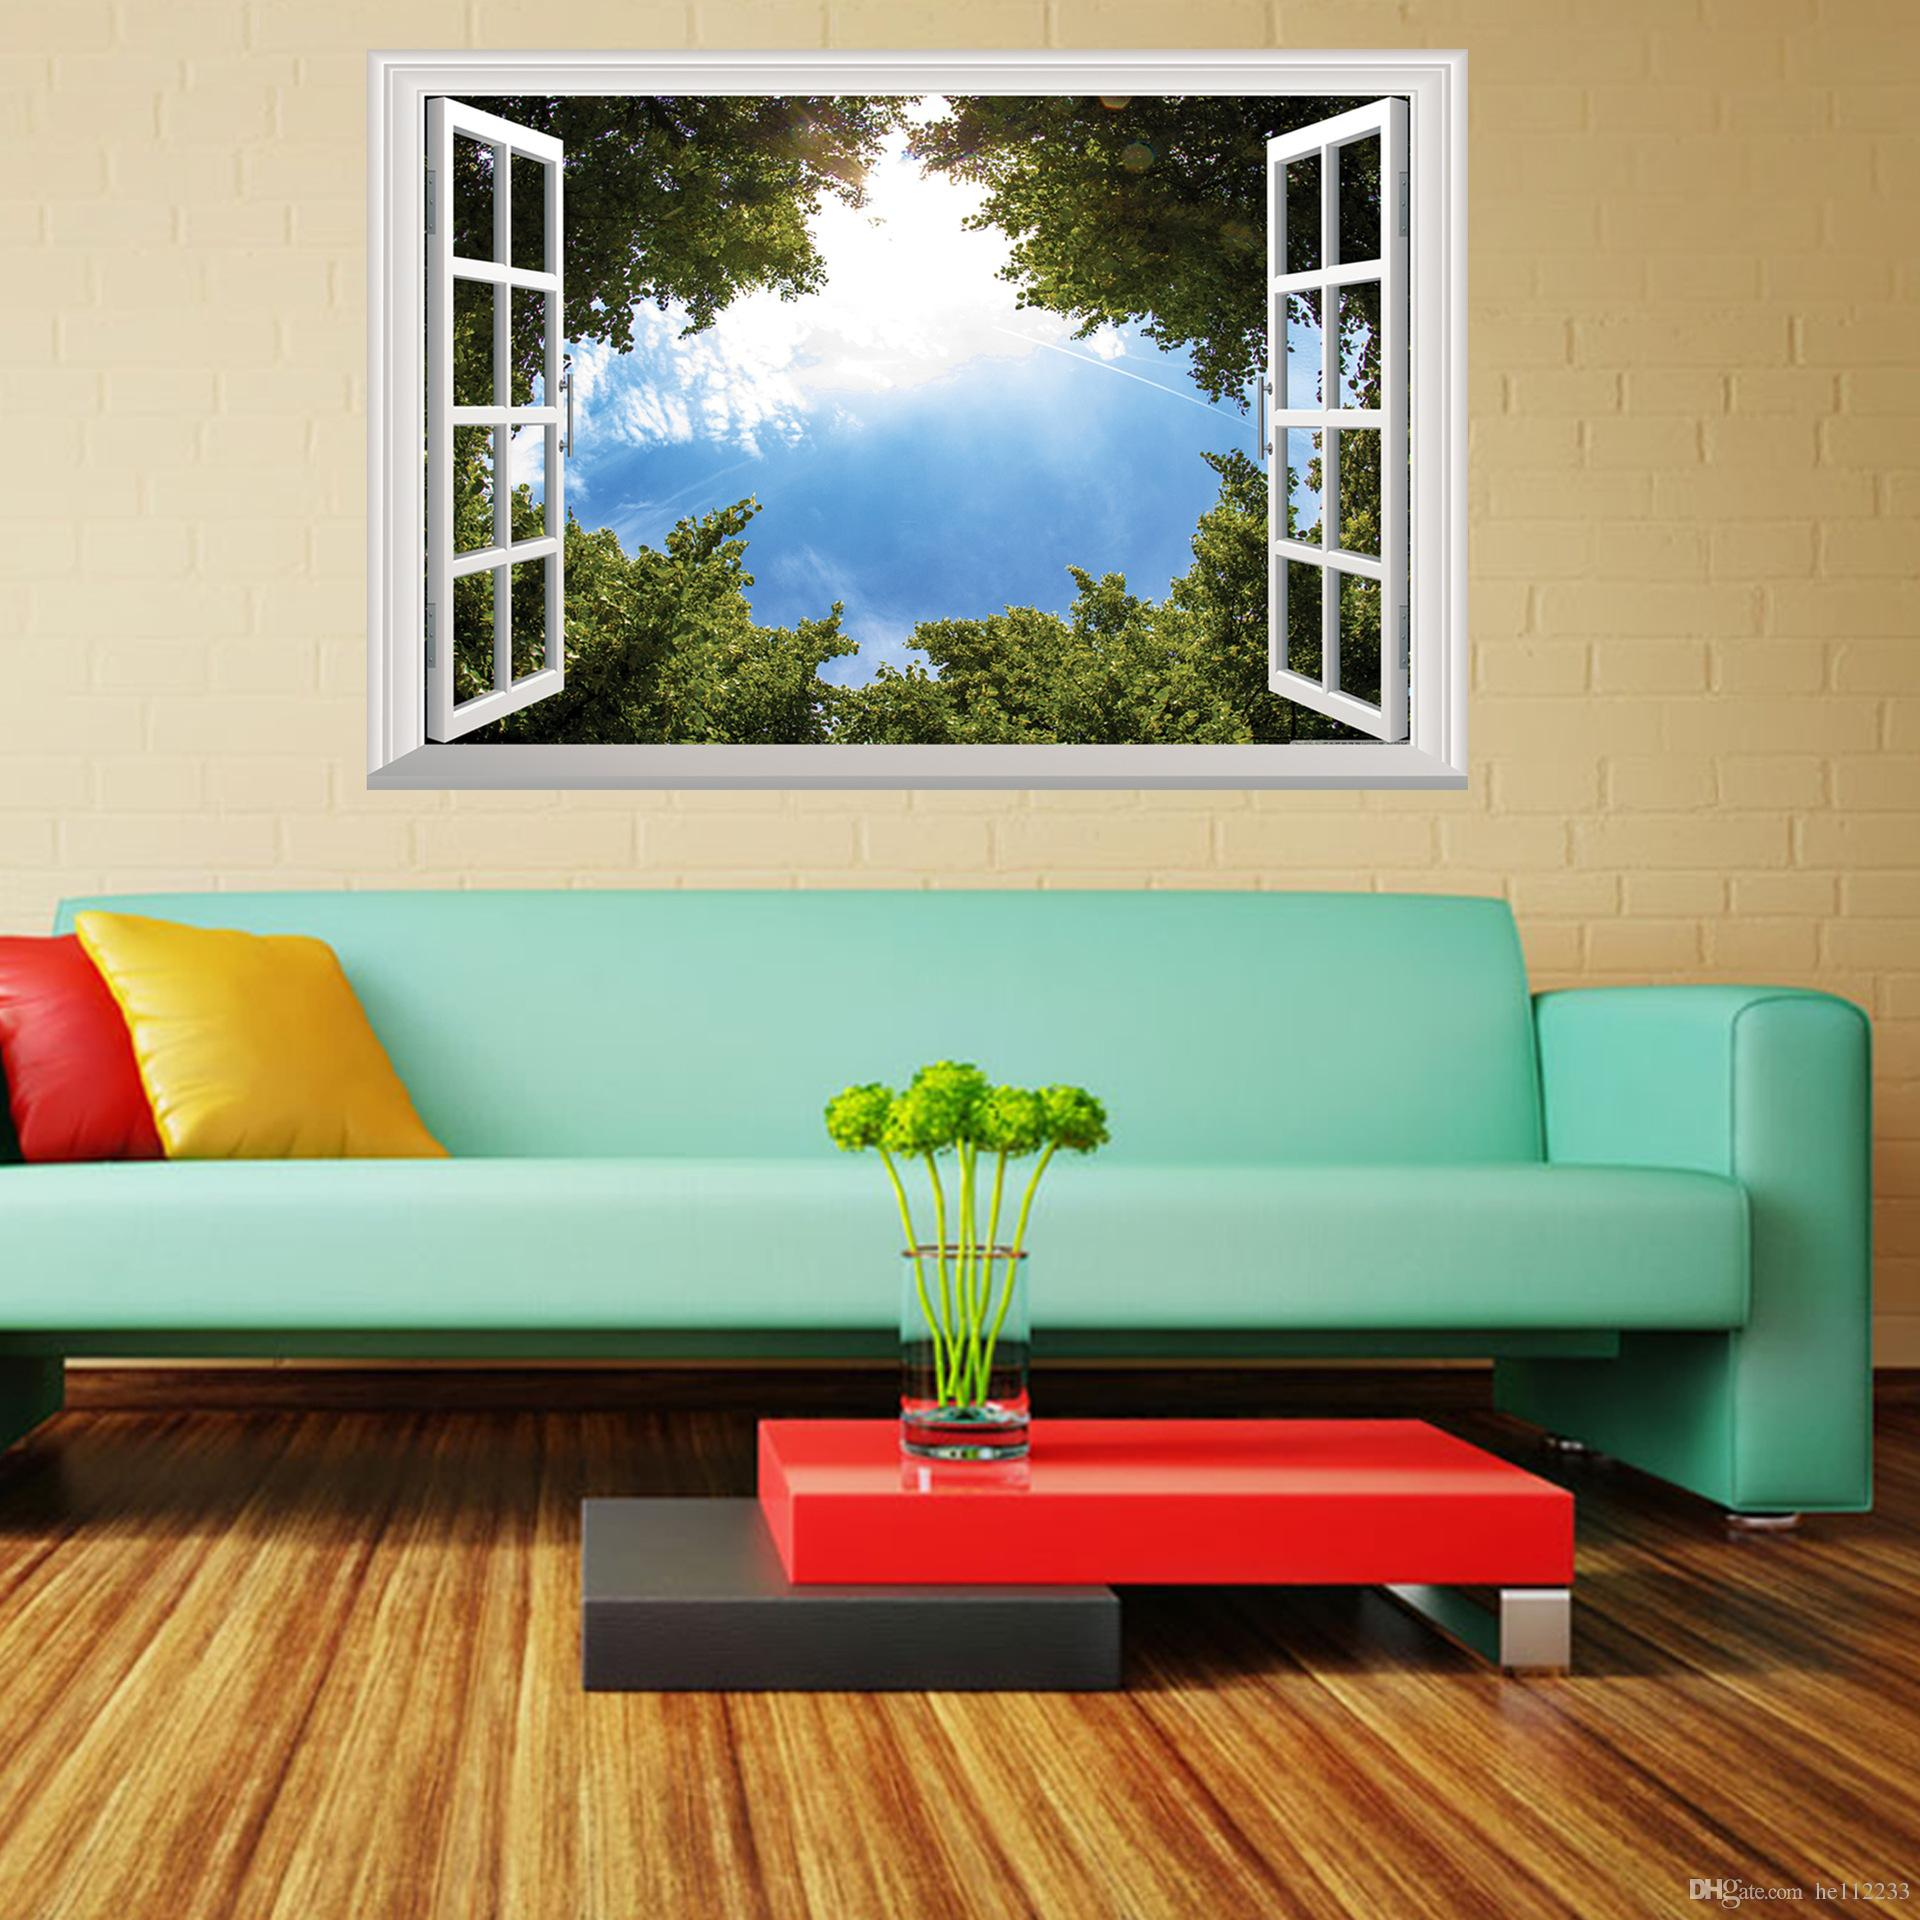 Poster Per Camera Da Letto.Acquista Green Tree Blue Sky 3d Wall Poster Soggiorno Camera Da